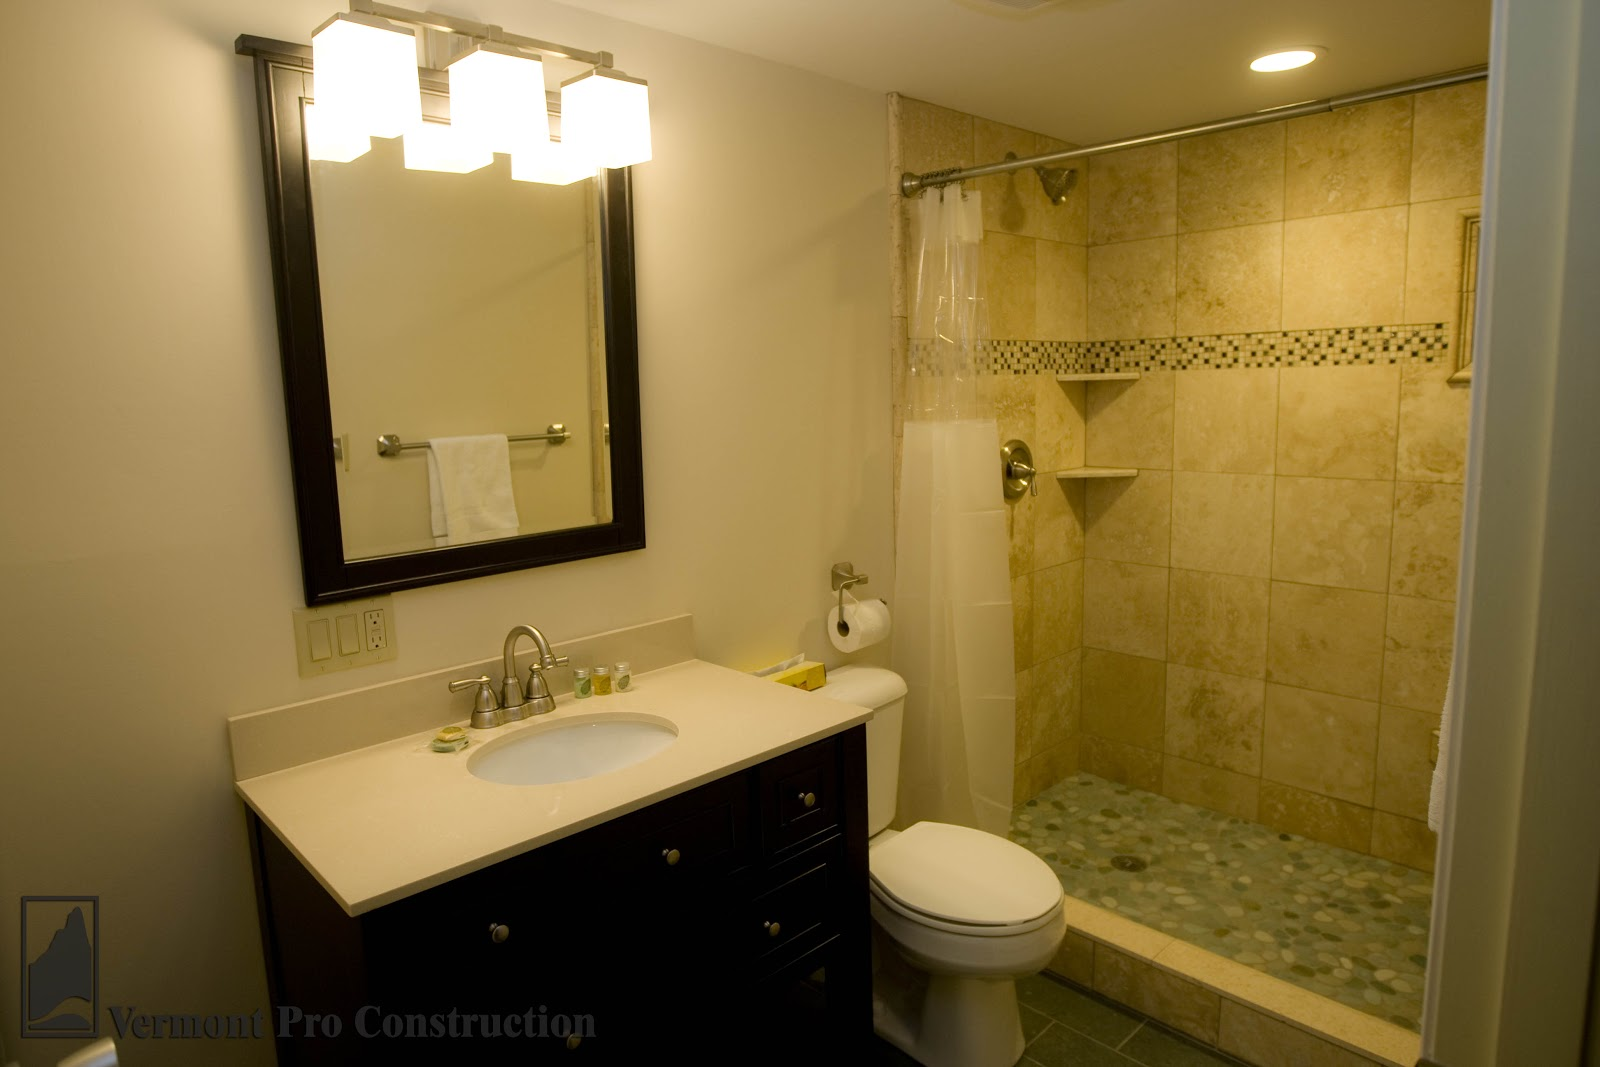 vermont professional construction painting llc tolchin On bathroom remodel pics